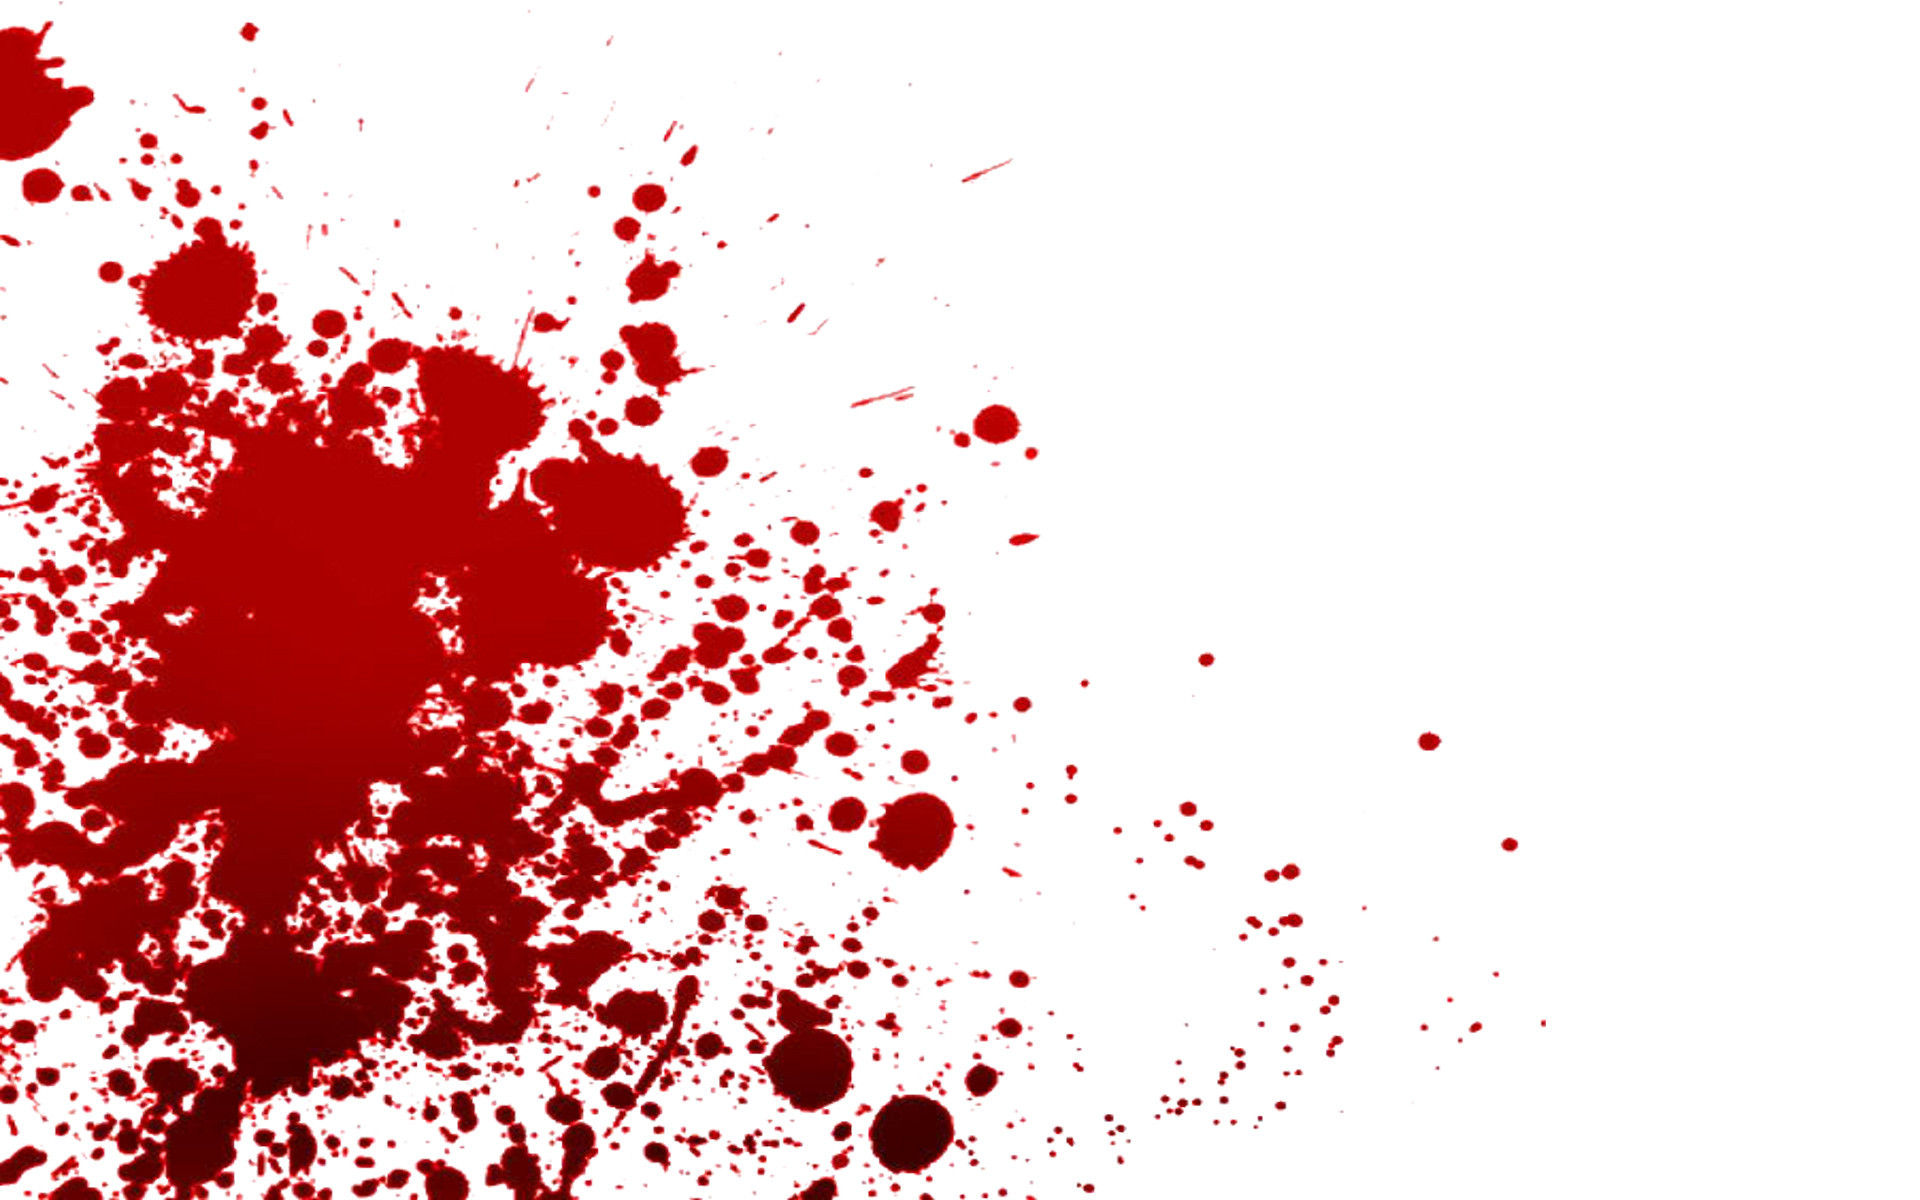 Blood Splatter Wallpaper [x3] : Dexter #7124